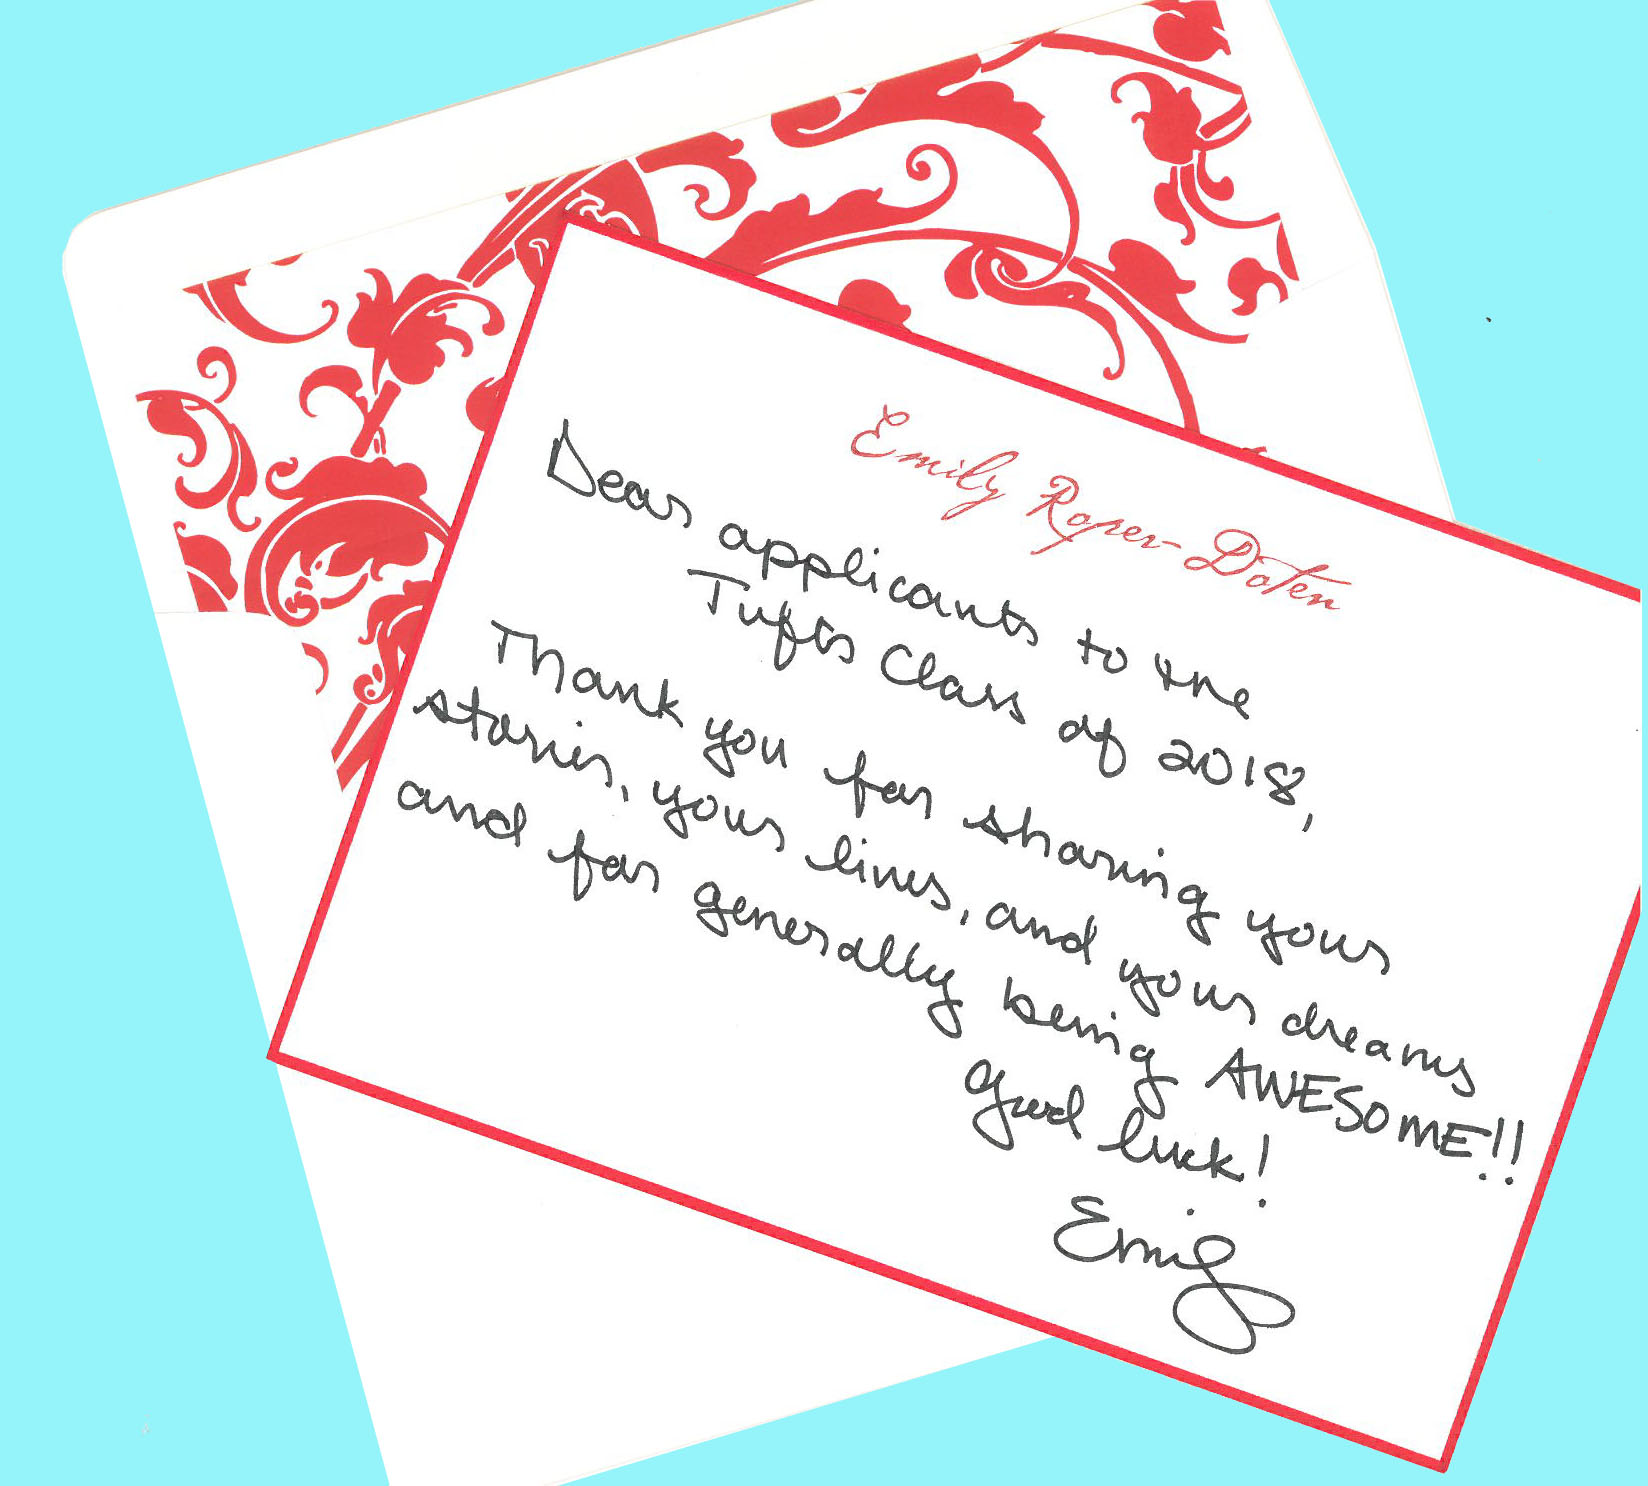 how to write a thank you letter college admissions officer sample the emily in bubble letters picture